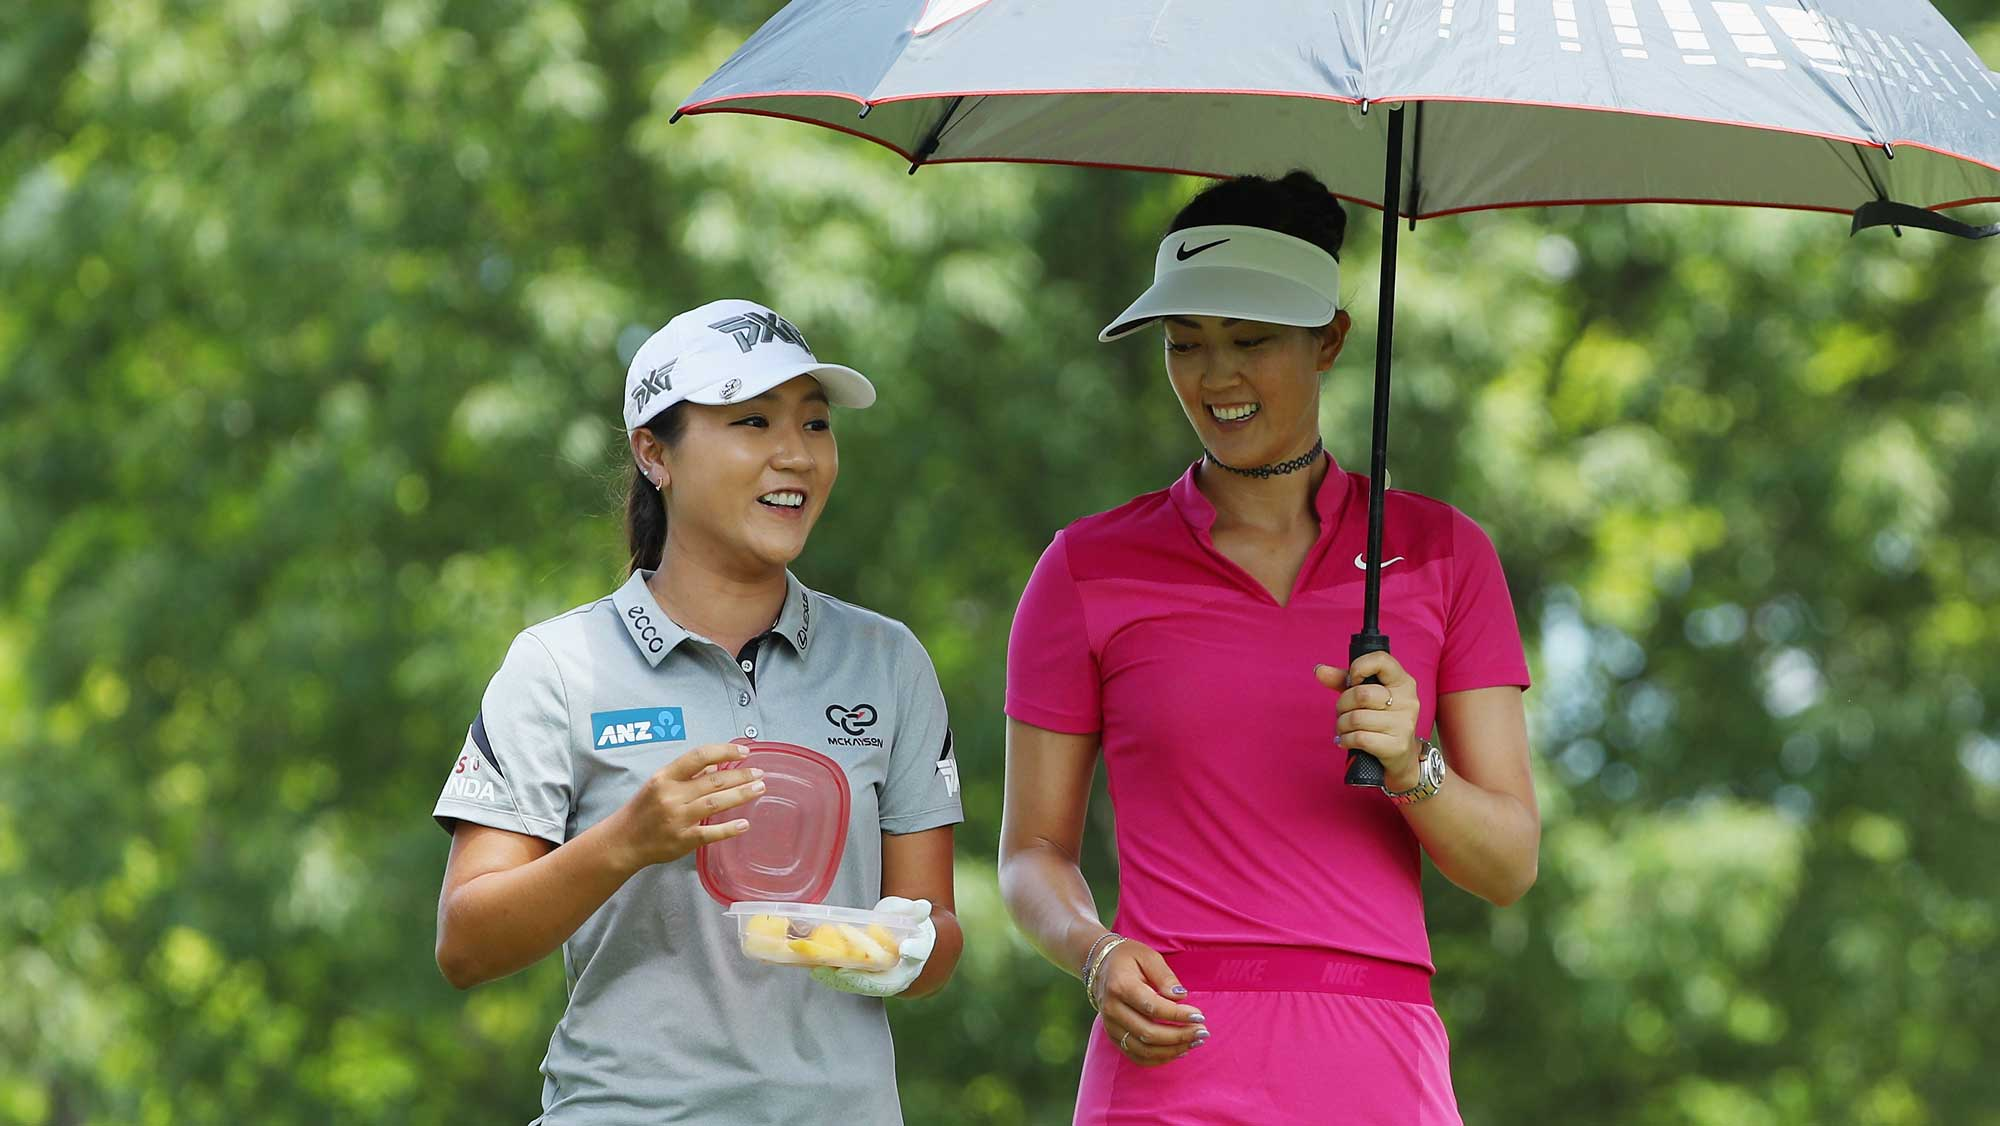 Michelle Wie and Lydia Ko of New Zealand wait together on the ninth hole during the third round of the 2017 KPMG Women's PGA Championship